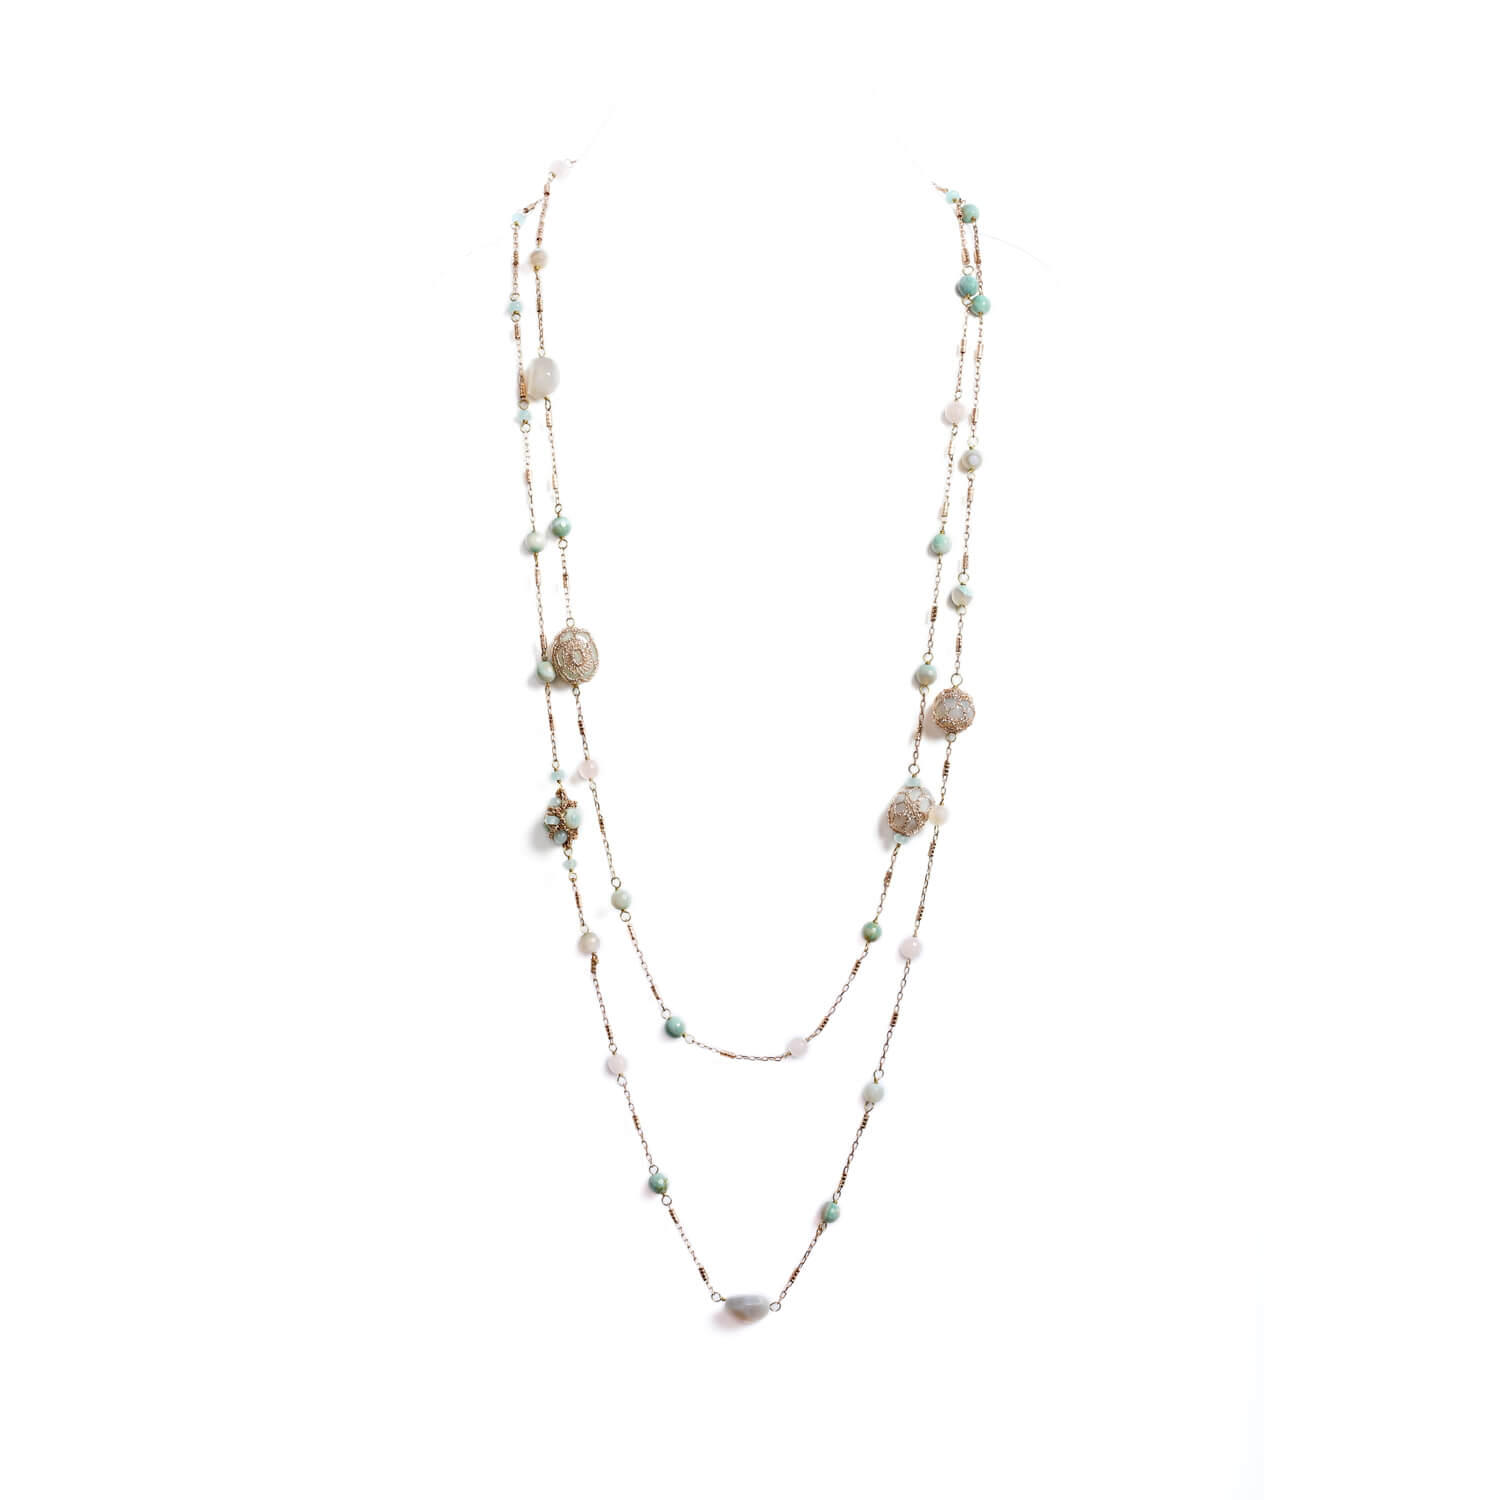 Nomad Double Wrap Long Beaded Chain Necklace - Jade Agate